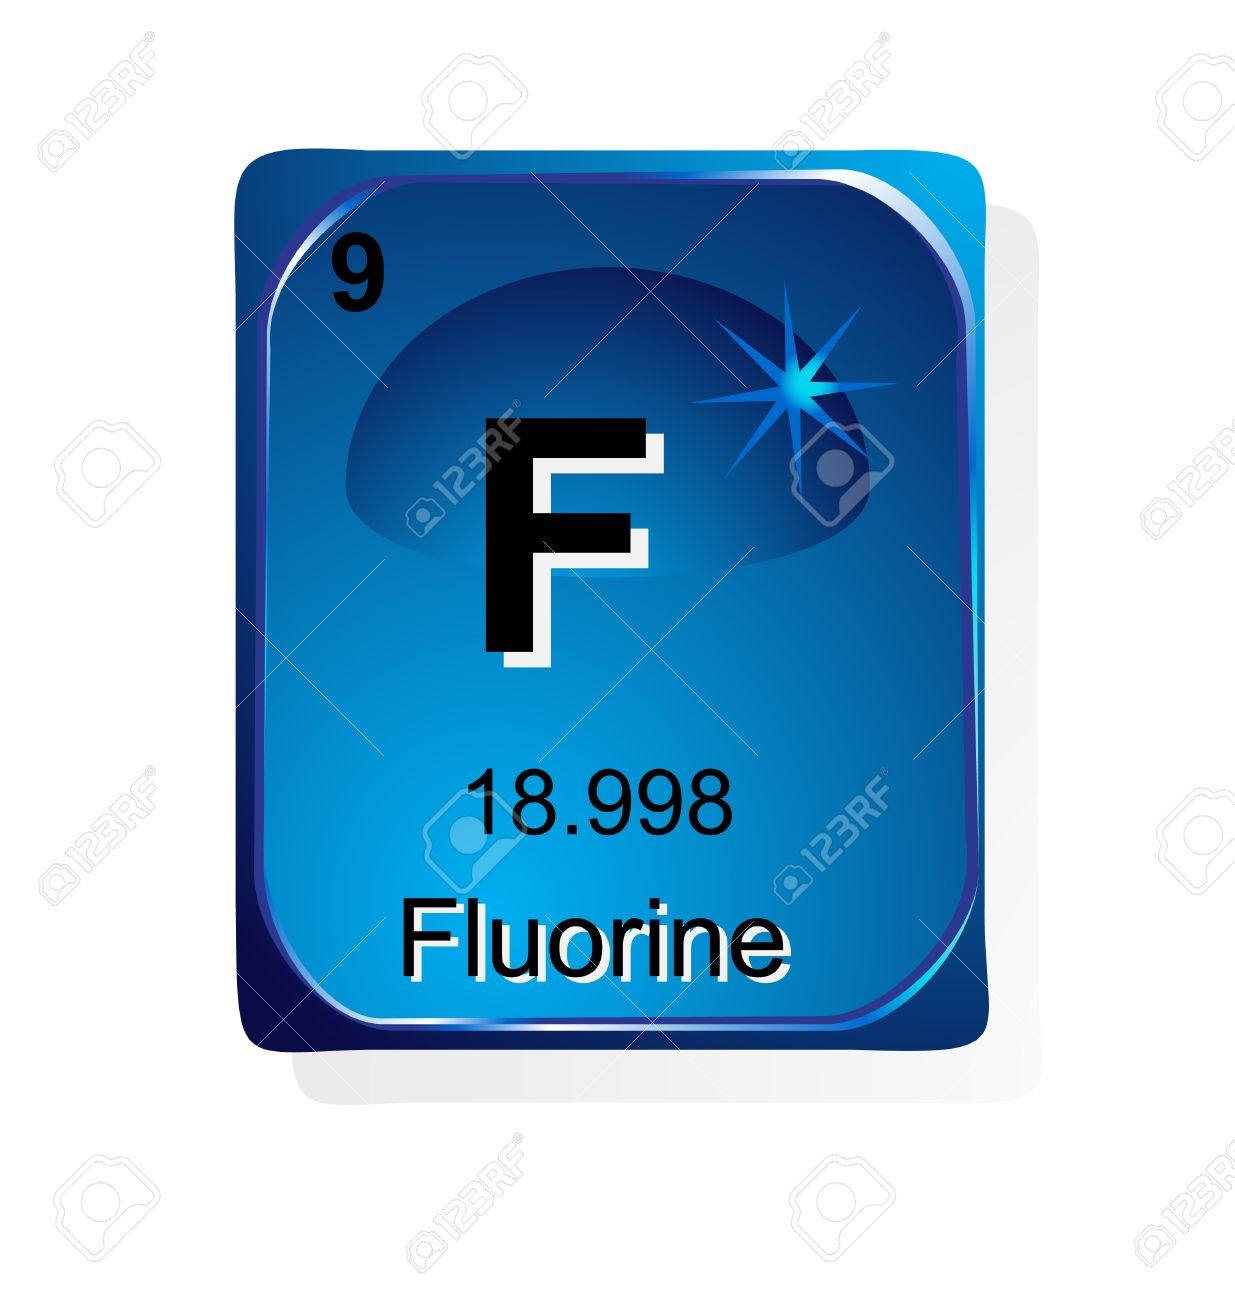 Fluorine Chemical Element With Atomic Number Symbol And Weight